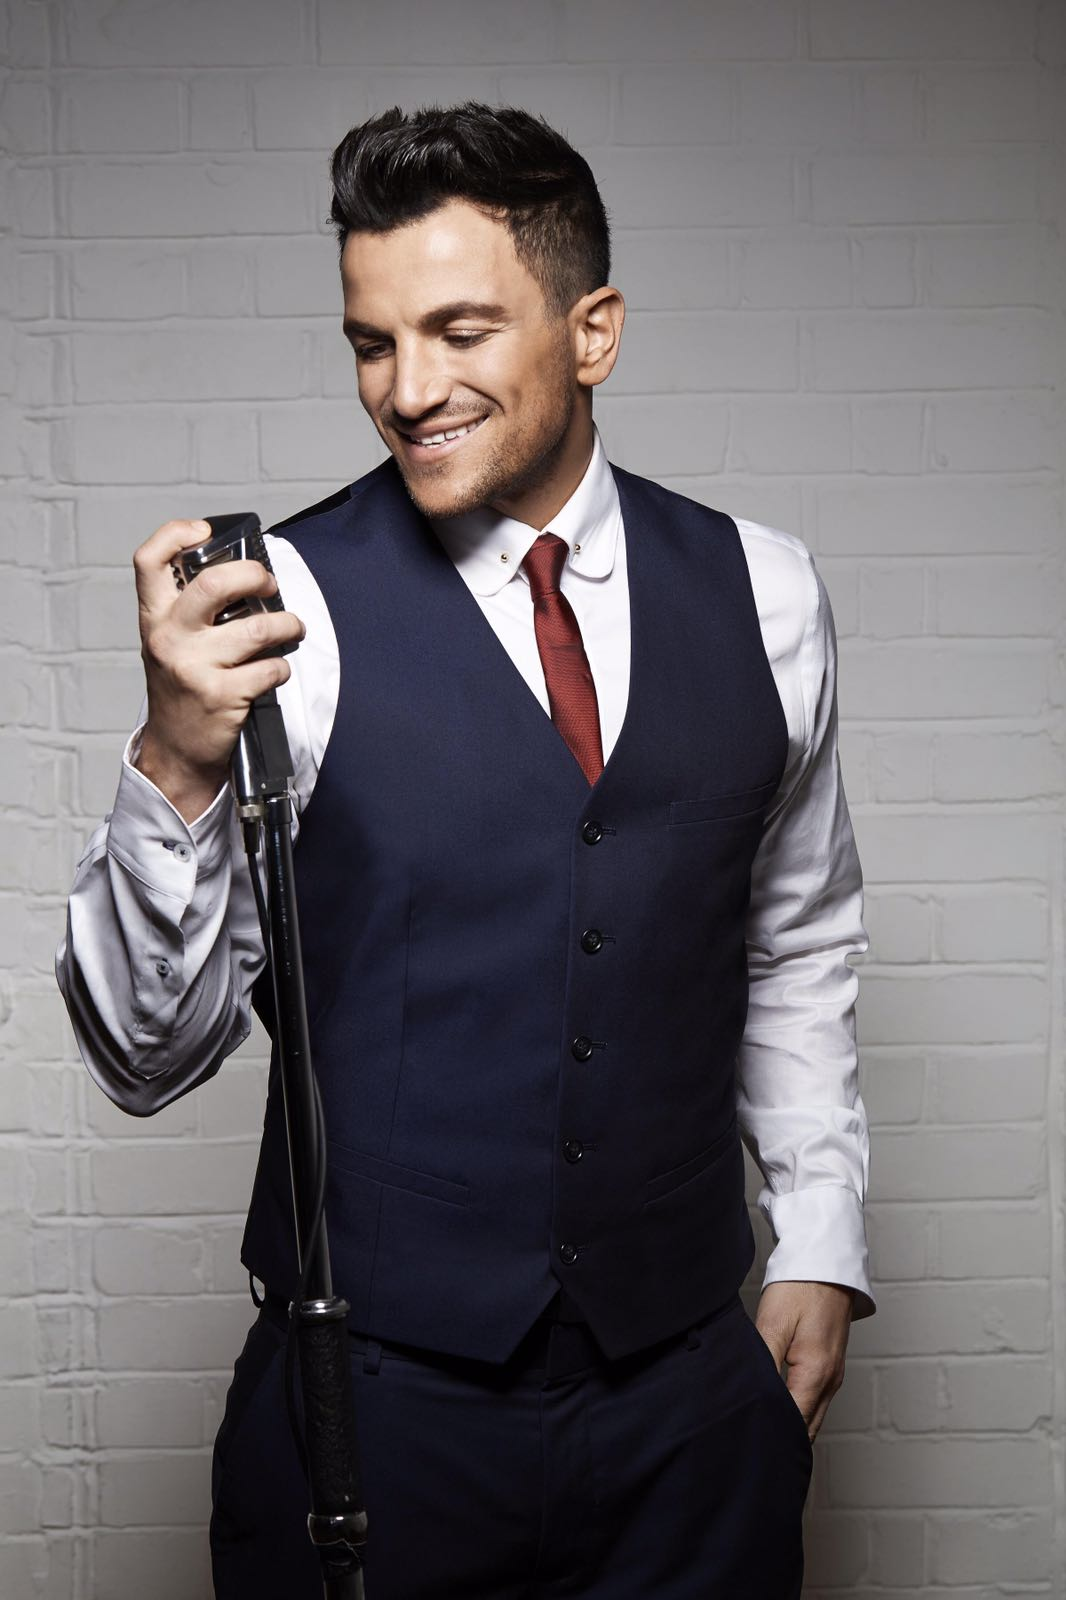 The forum bath peter andre 2019 02 22 peter andre m4hsunfo